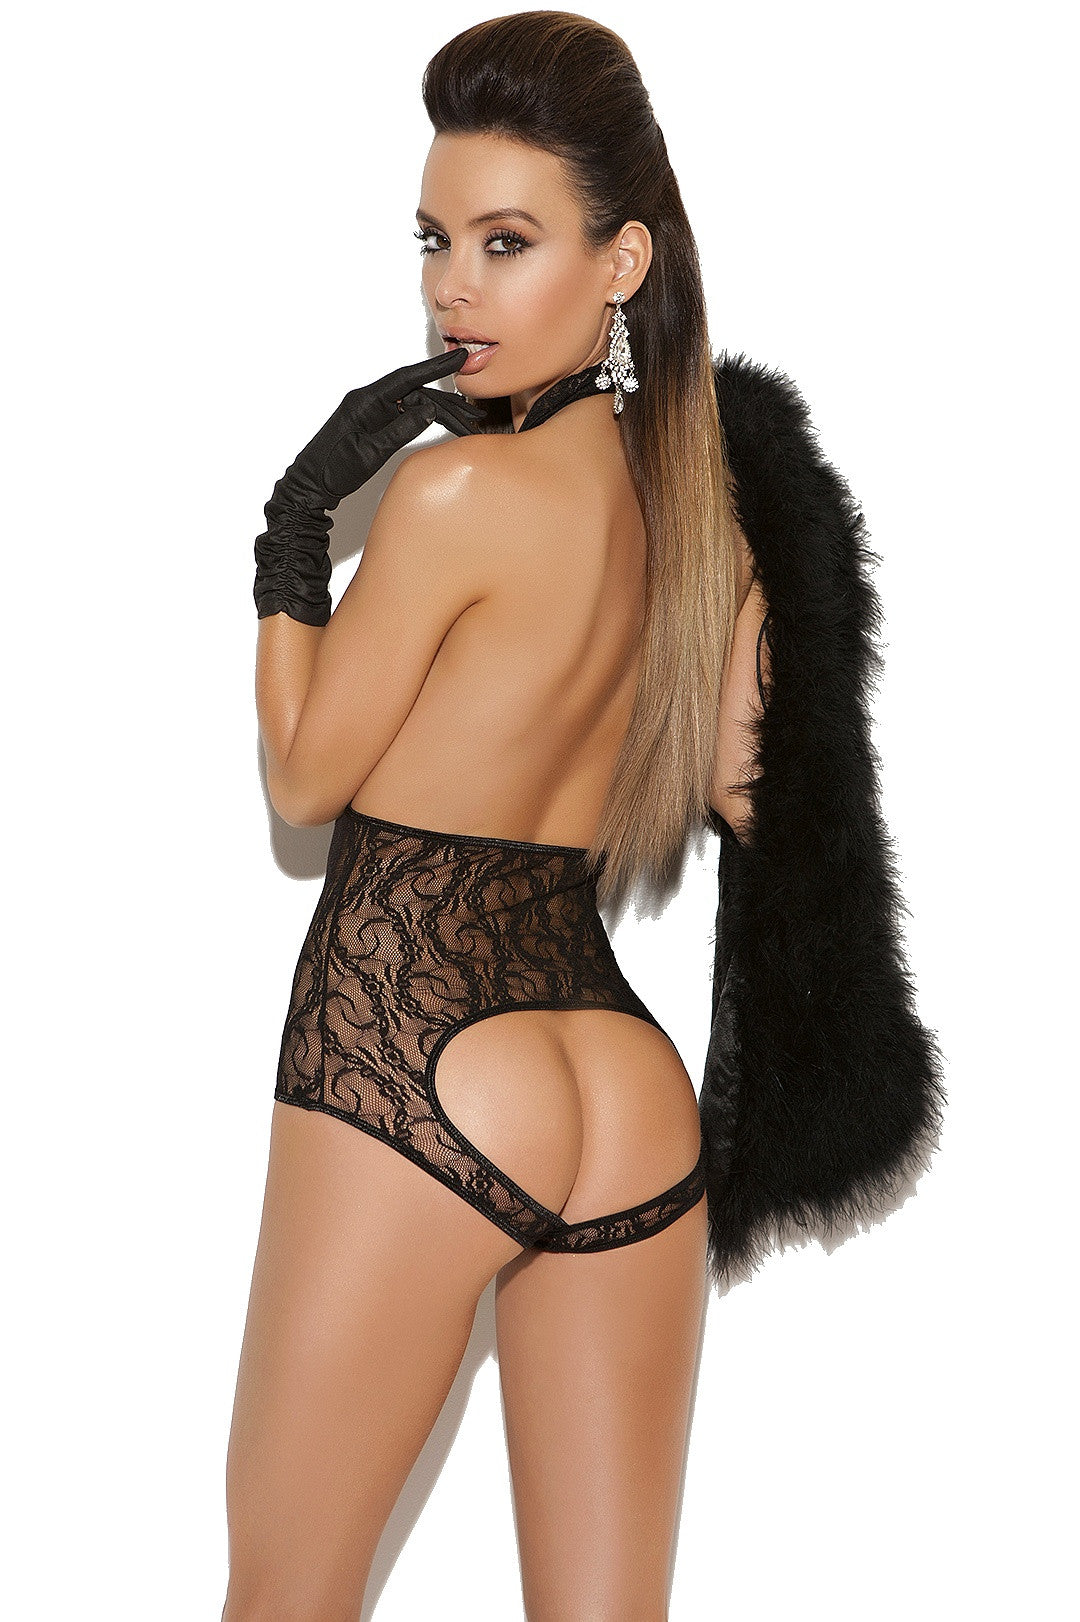 EM-8743 Teddy with open back - Sexylingerieland